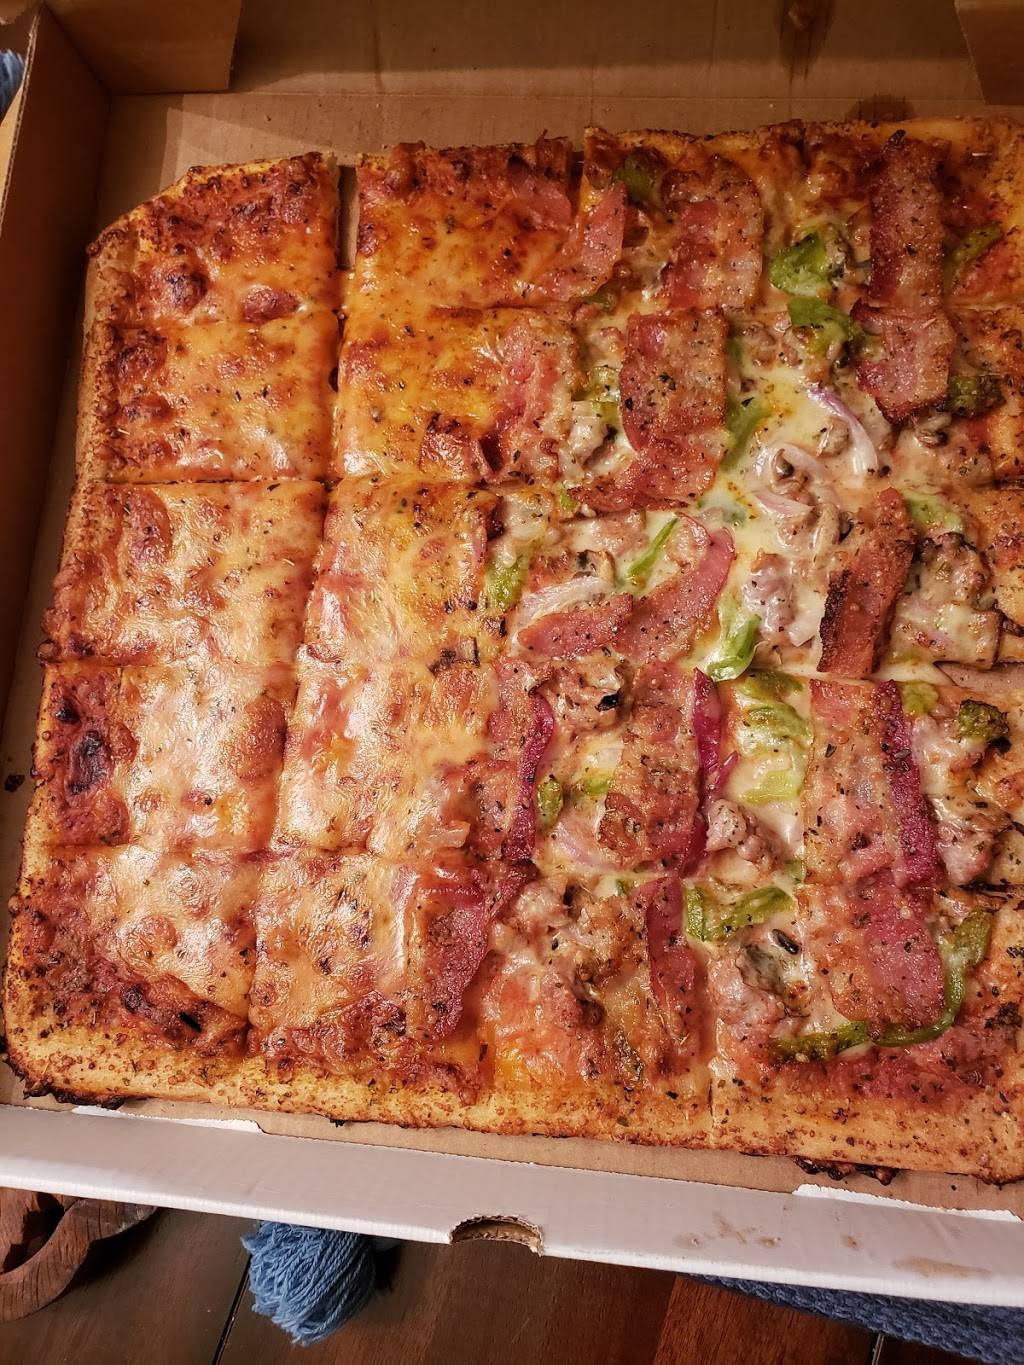 Imos Pizza - meal delivery  | Photo 6 of 10 | Address: 5806 Hampton Ave, St. Louis, MO 63109, USA | Phone: (314) 832-9677